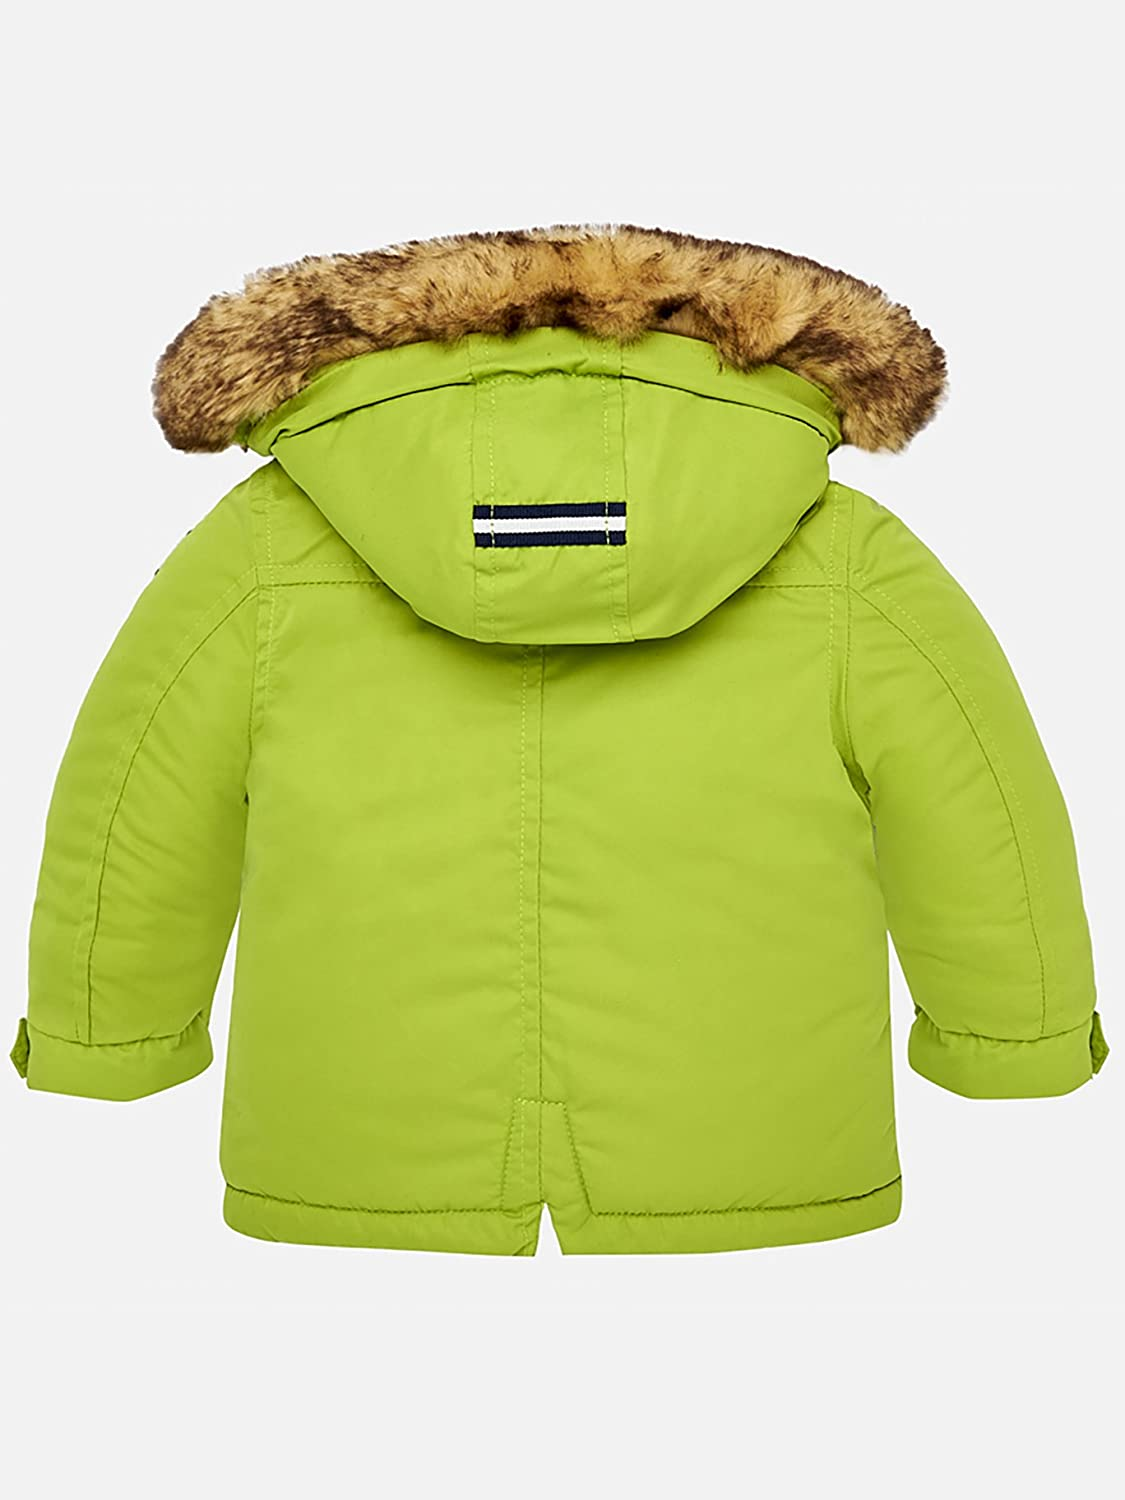 51cc8dfba9d3 Amazon.com: Mayoral 18-02475-046 - Nautical Jacket for Baby-Boys 12 Months  Kale: Clothing